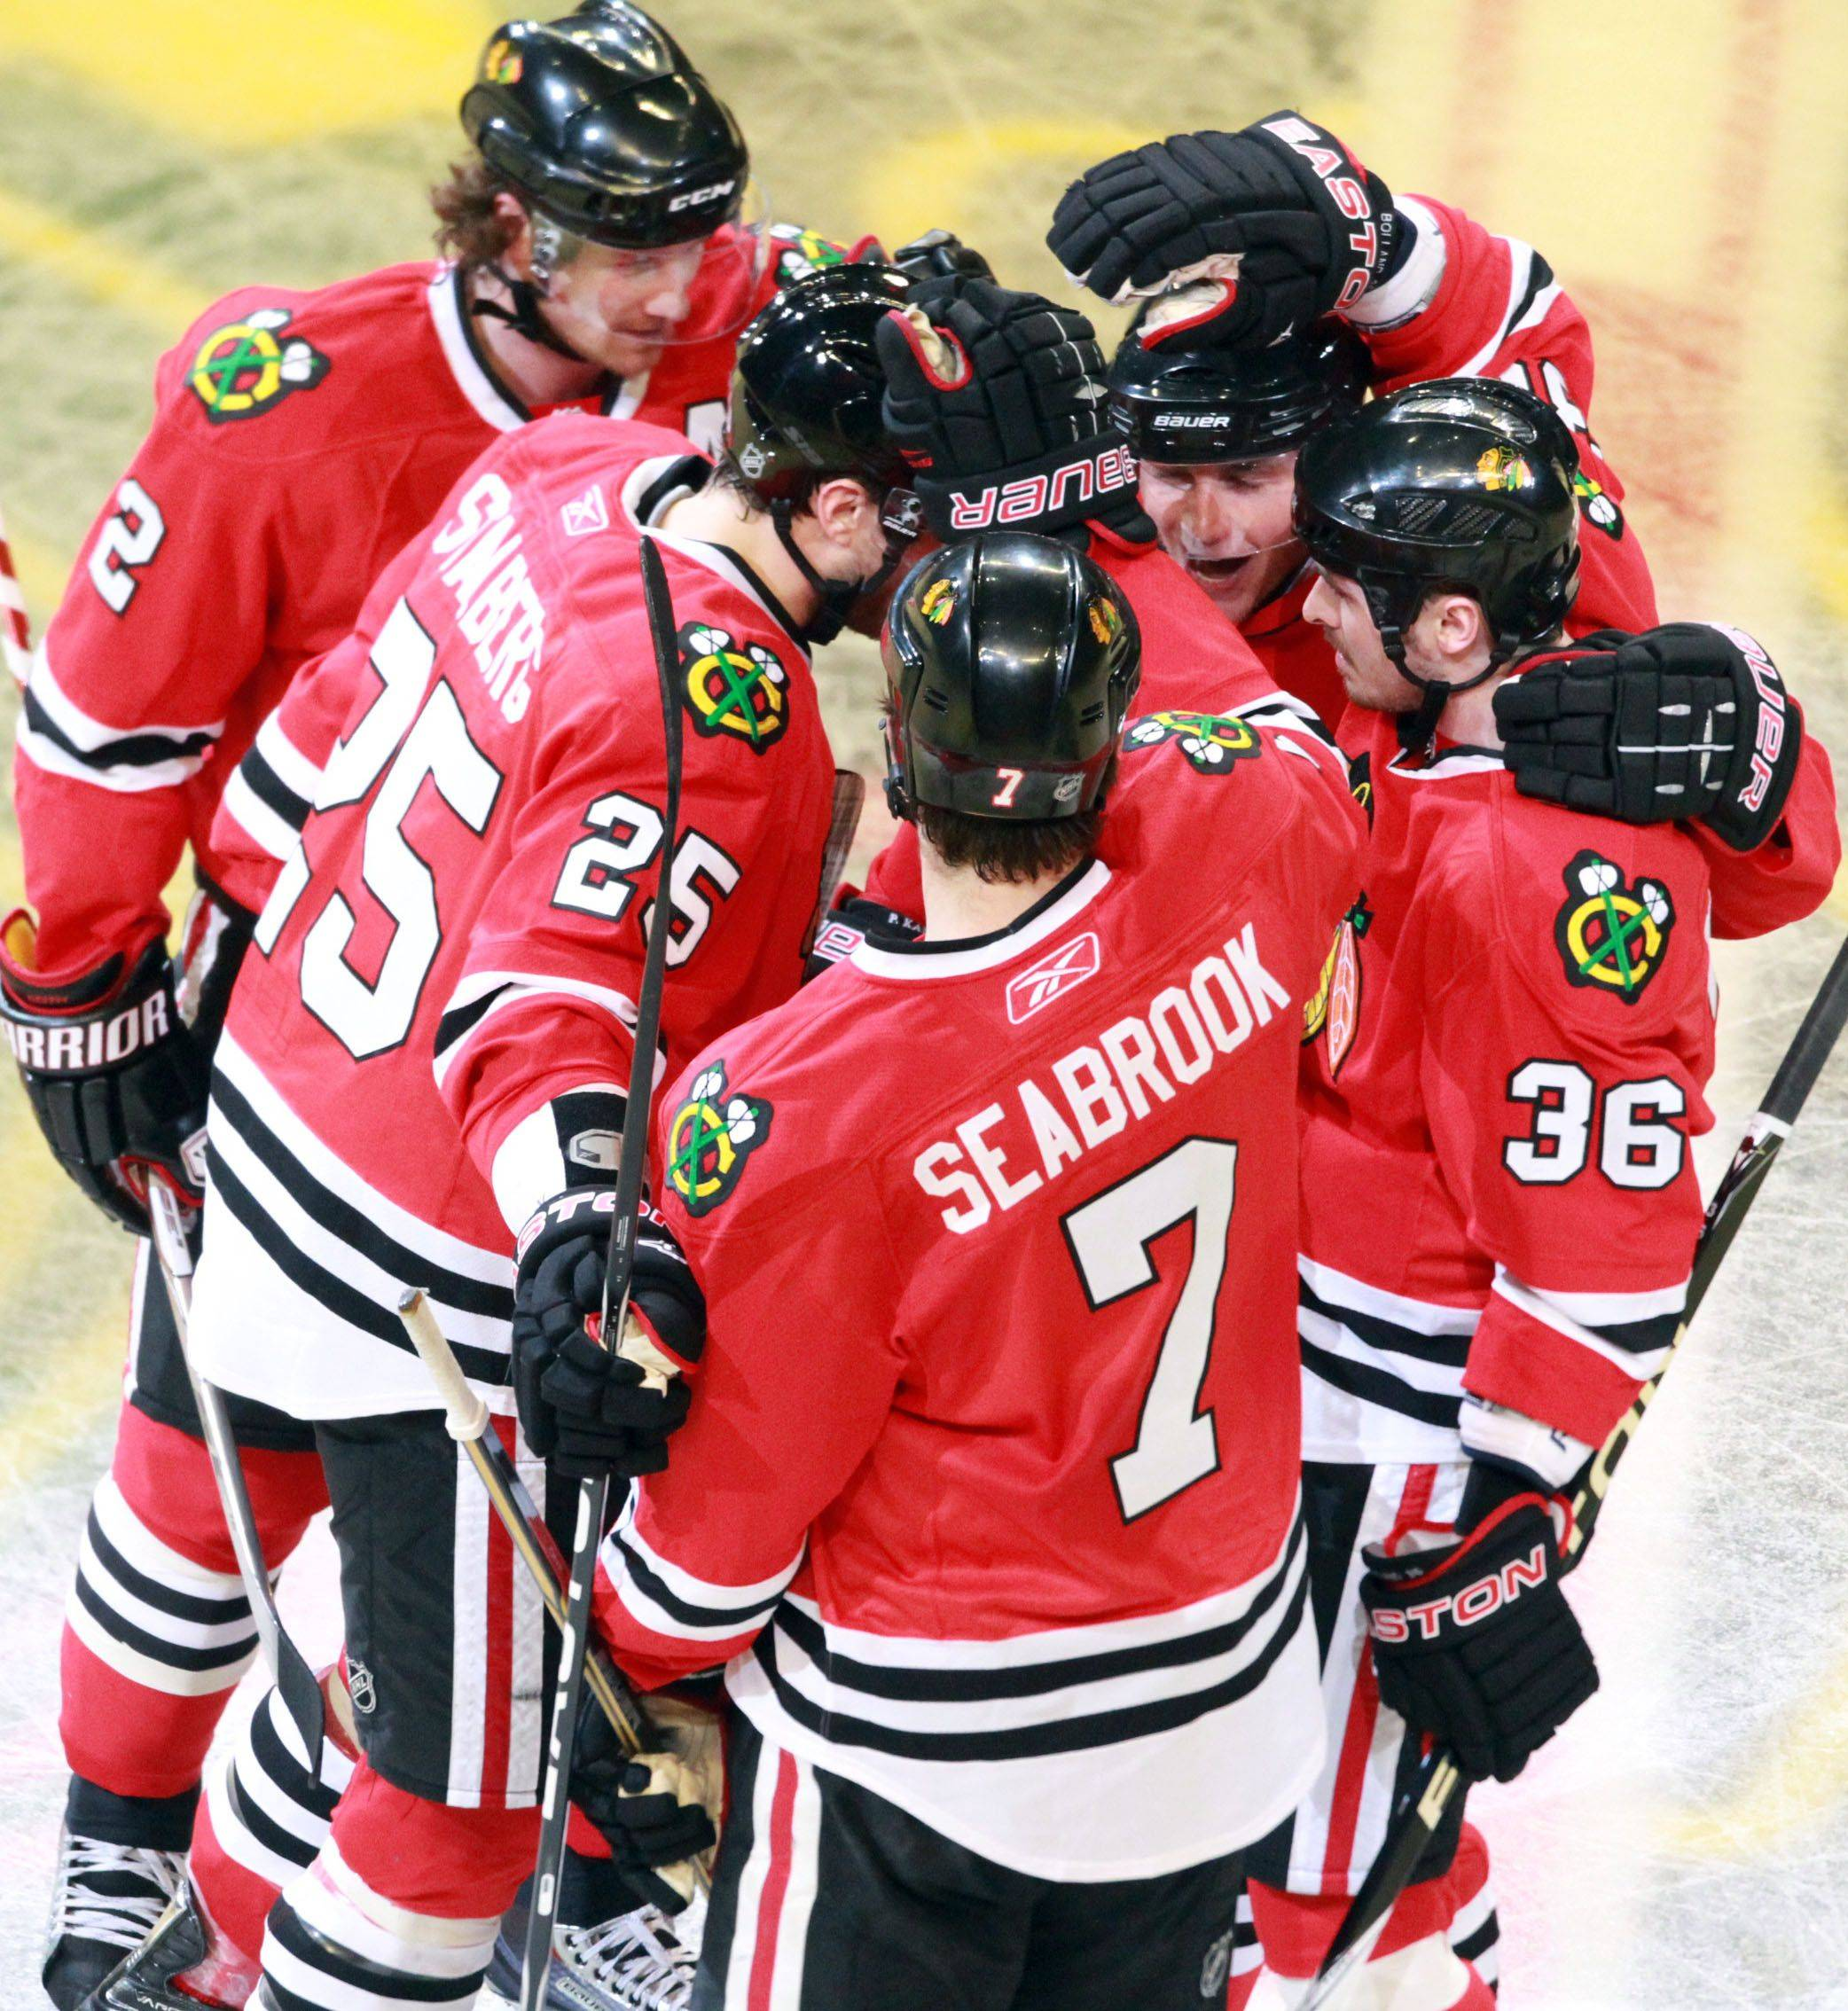 Chicago Blackhawks celebrate penalty goal by Michael Frolik against Vancouver Canucks in game 6 of the Stanley Cup quarterfinals at the United Center in Chicago on Sunday.